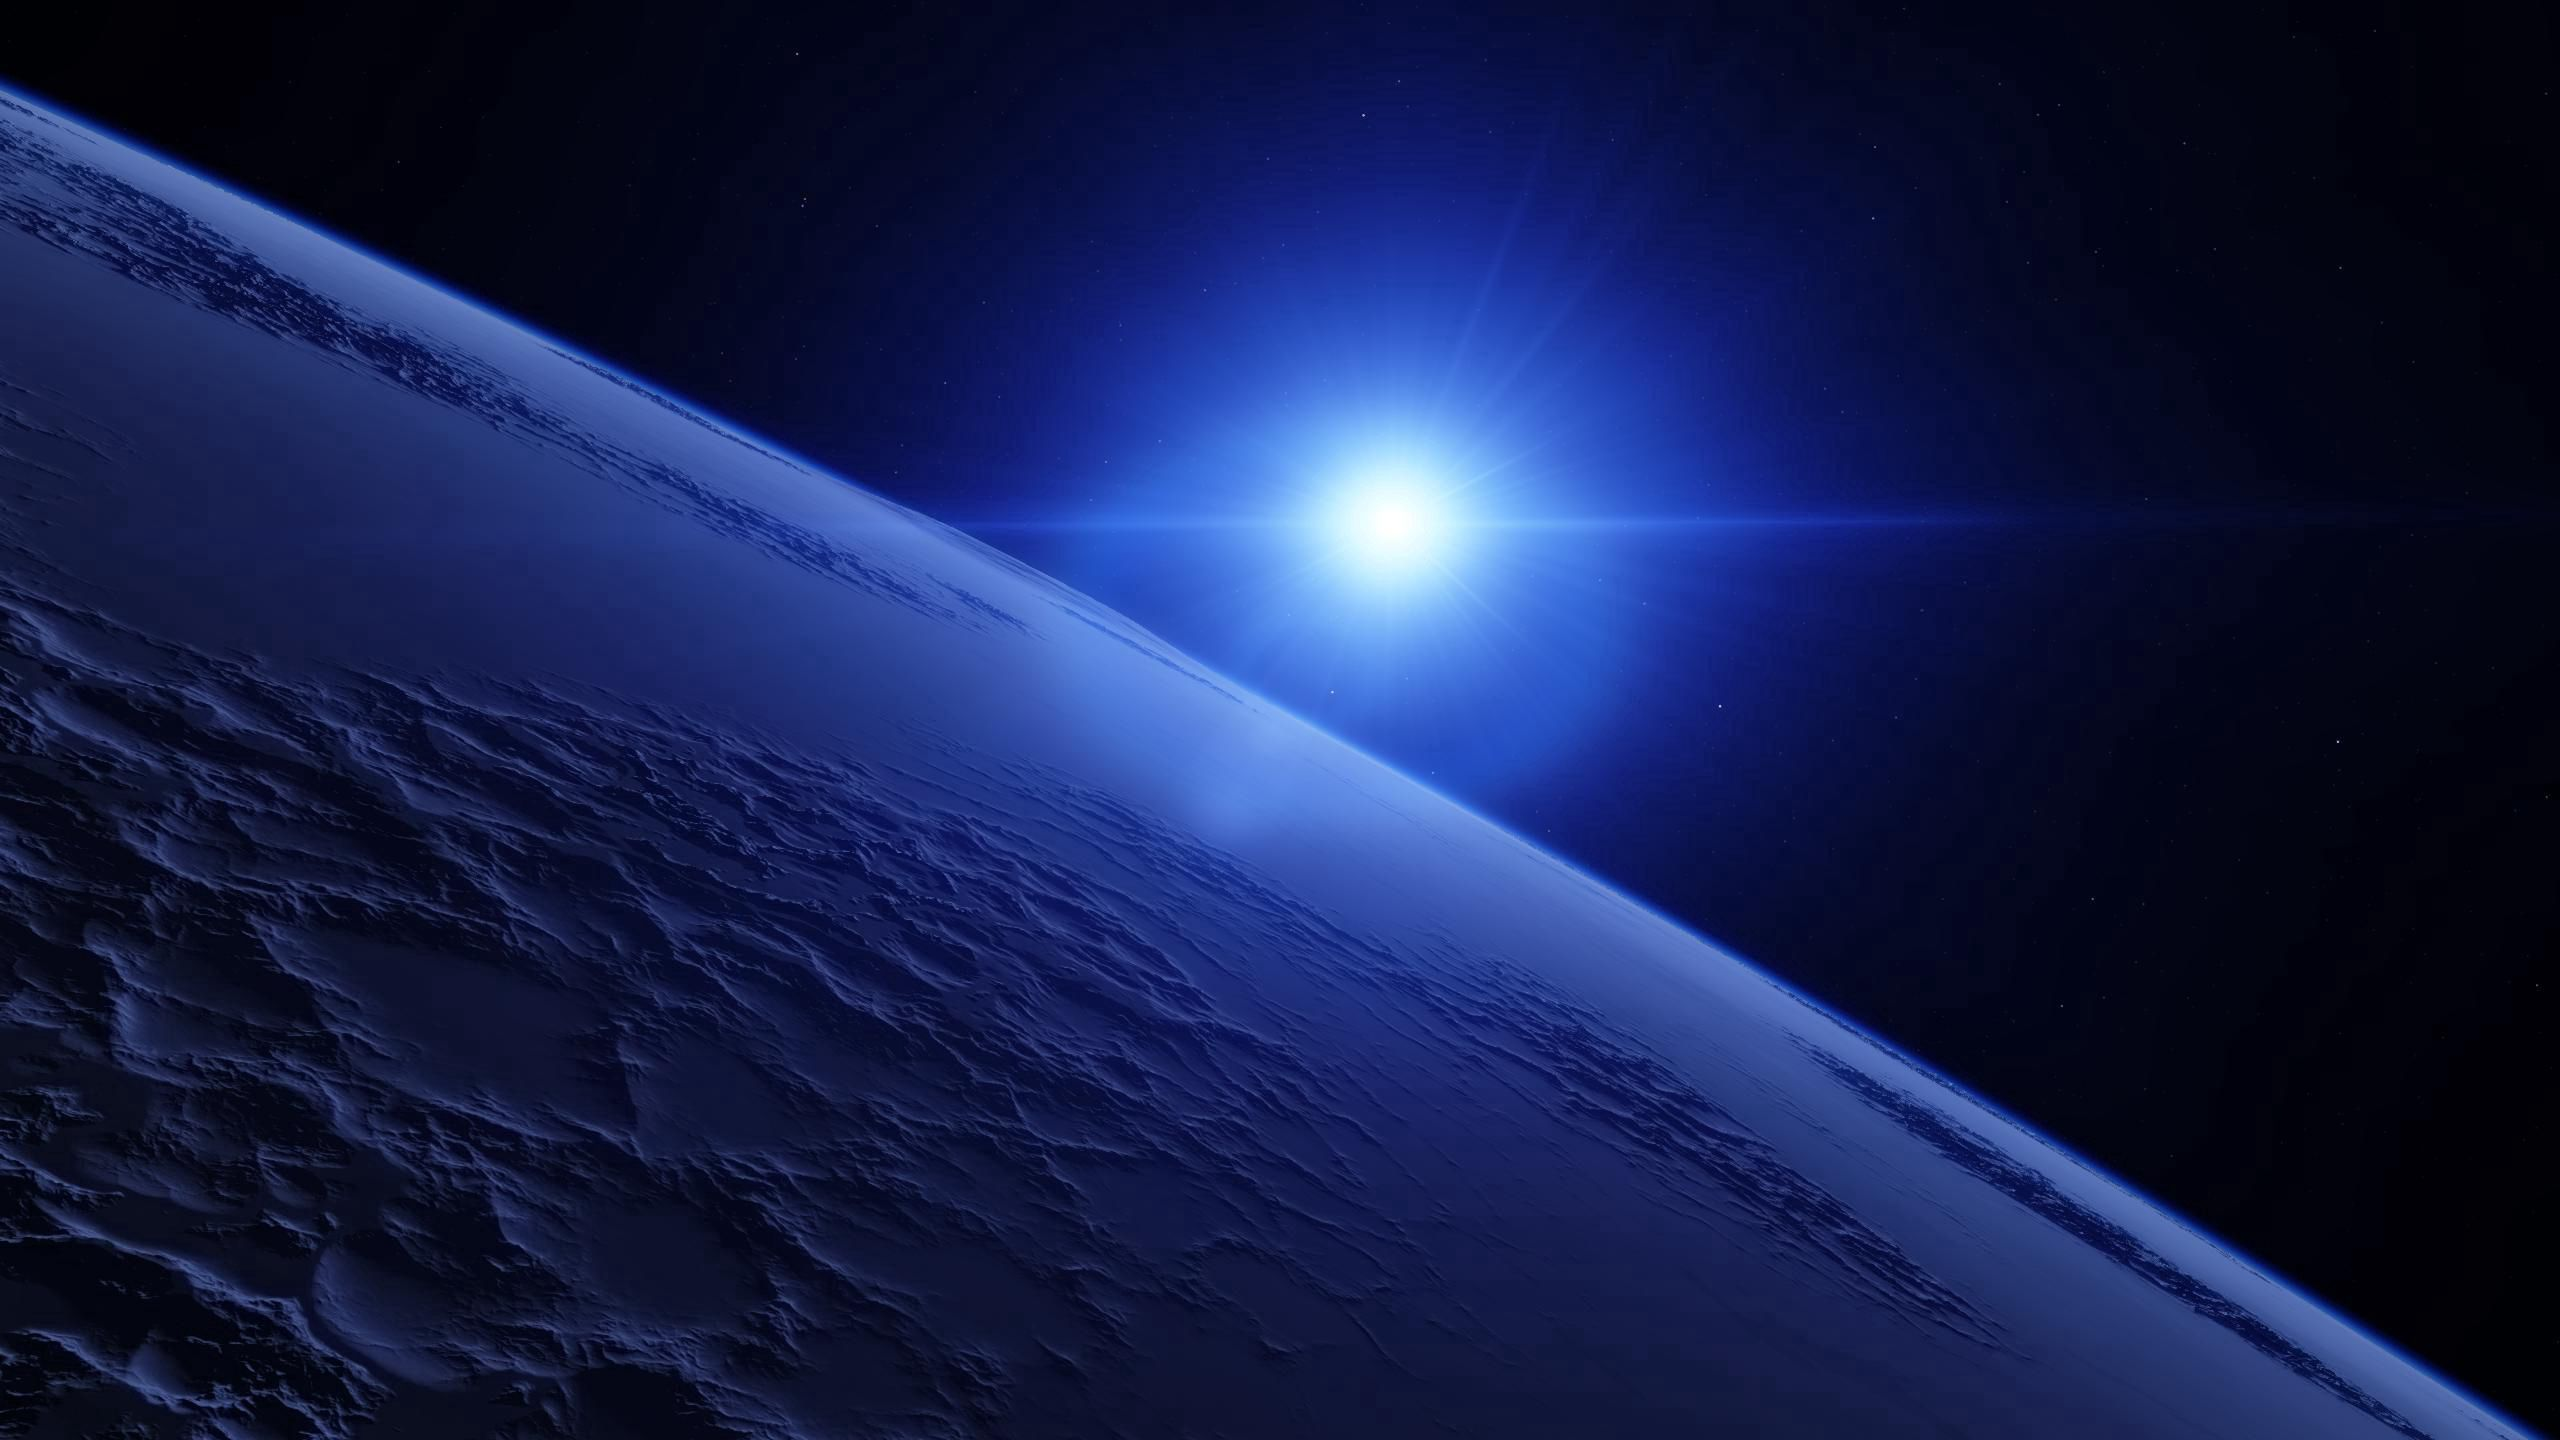 127965 download wallpaper Surface, Stars, Universe, Planet screensavers and pictures for free